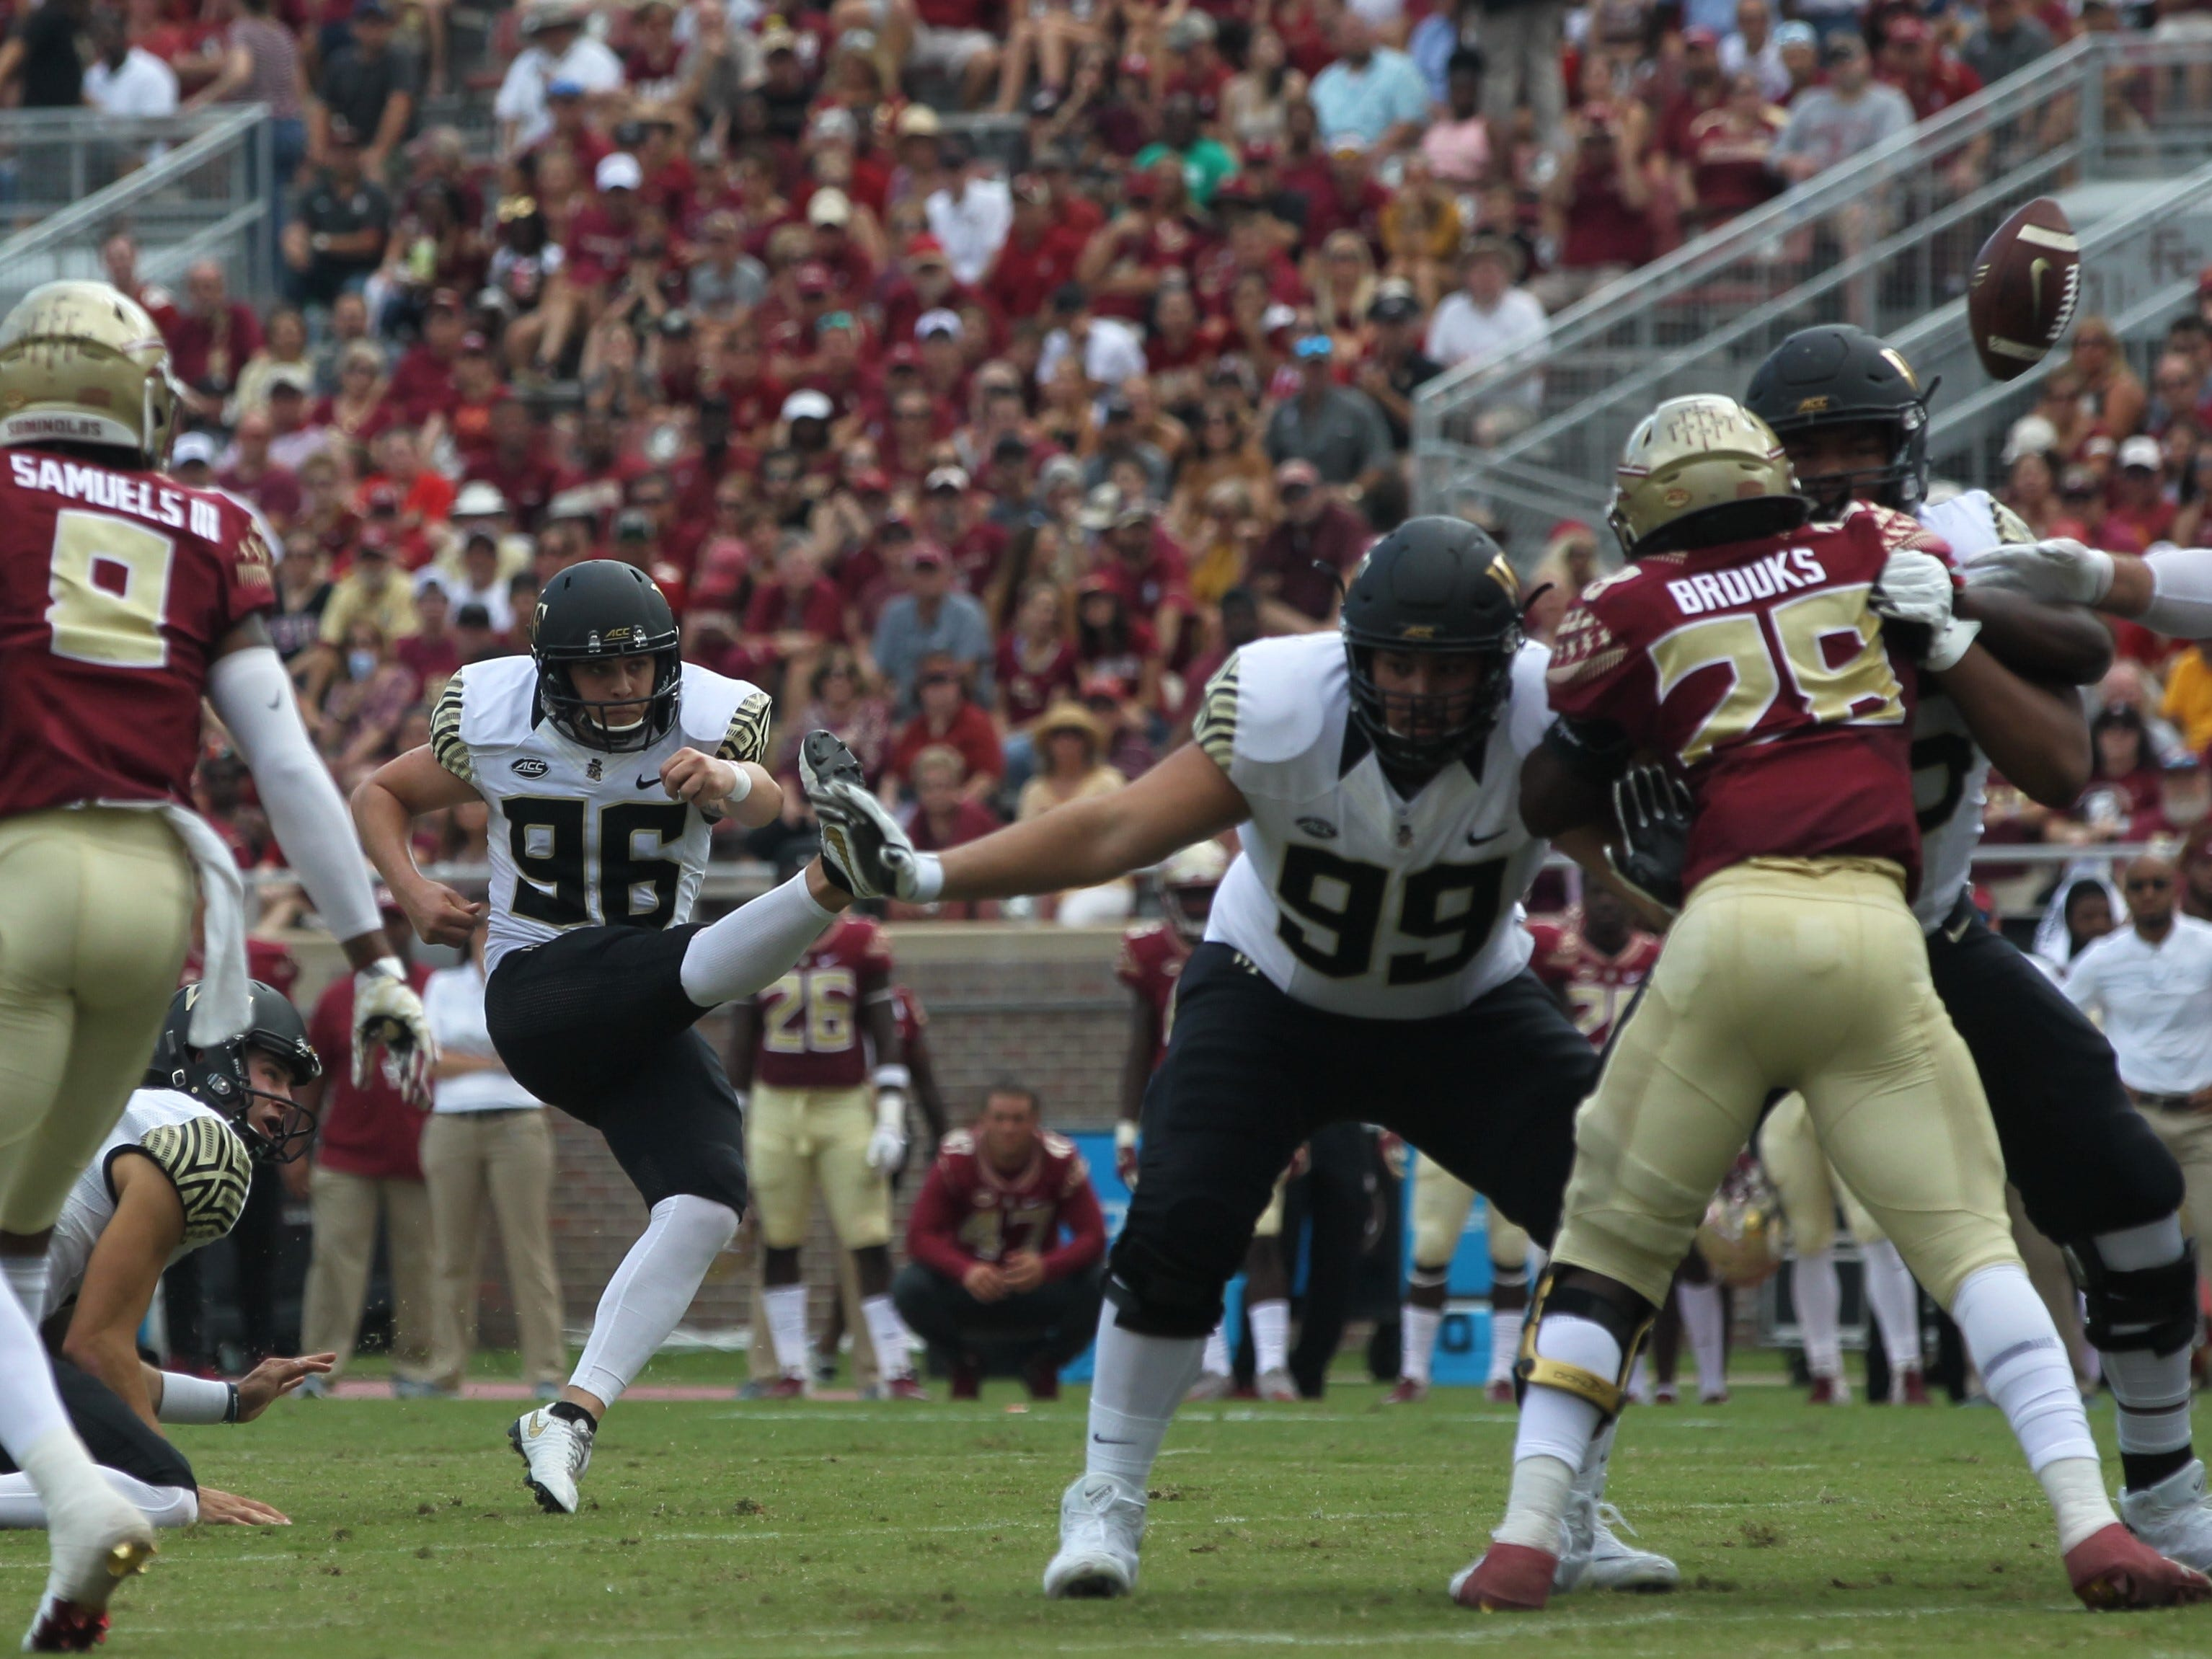 Wake Forest kicker Nick Sciba kicks a field goal against Florida State during a game at Doak Campbell Stadium on Saturday, Oct. 20, 2018.